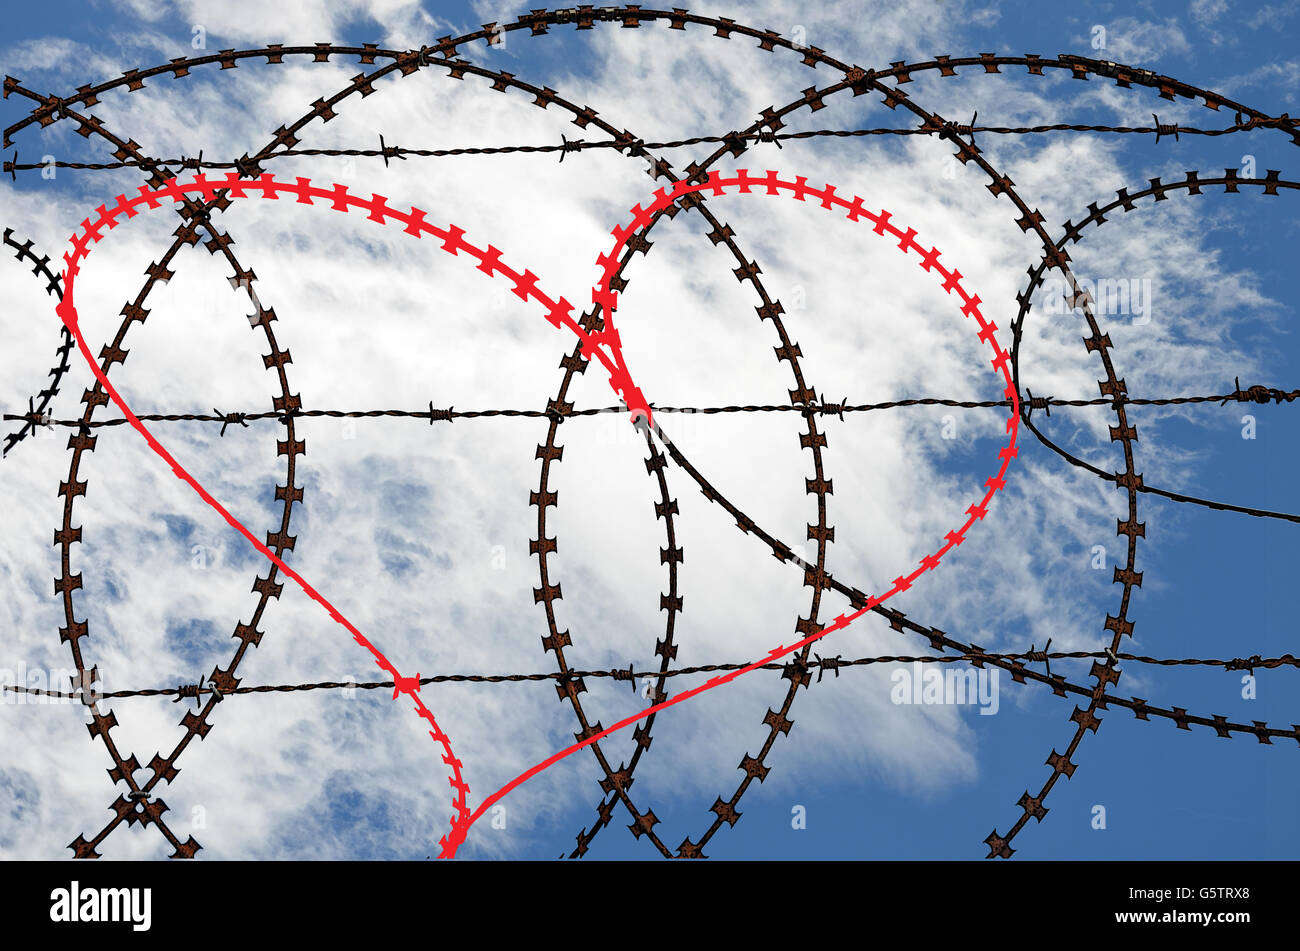 Natural heart shape (digitally coloured red) in a barb wire fence on sky background. Love, freedom, peace and compassion - Stock Image